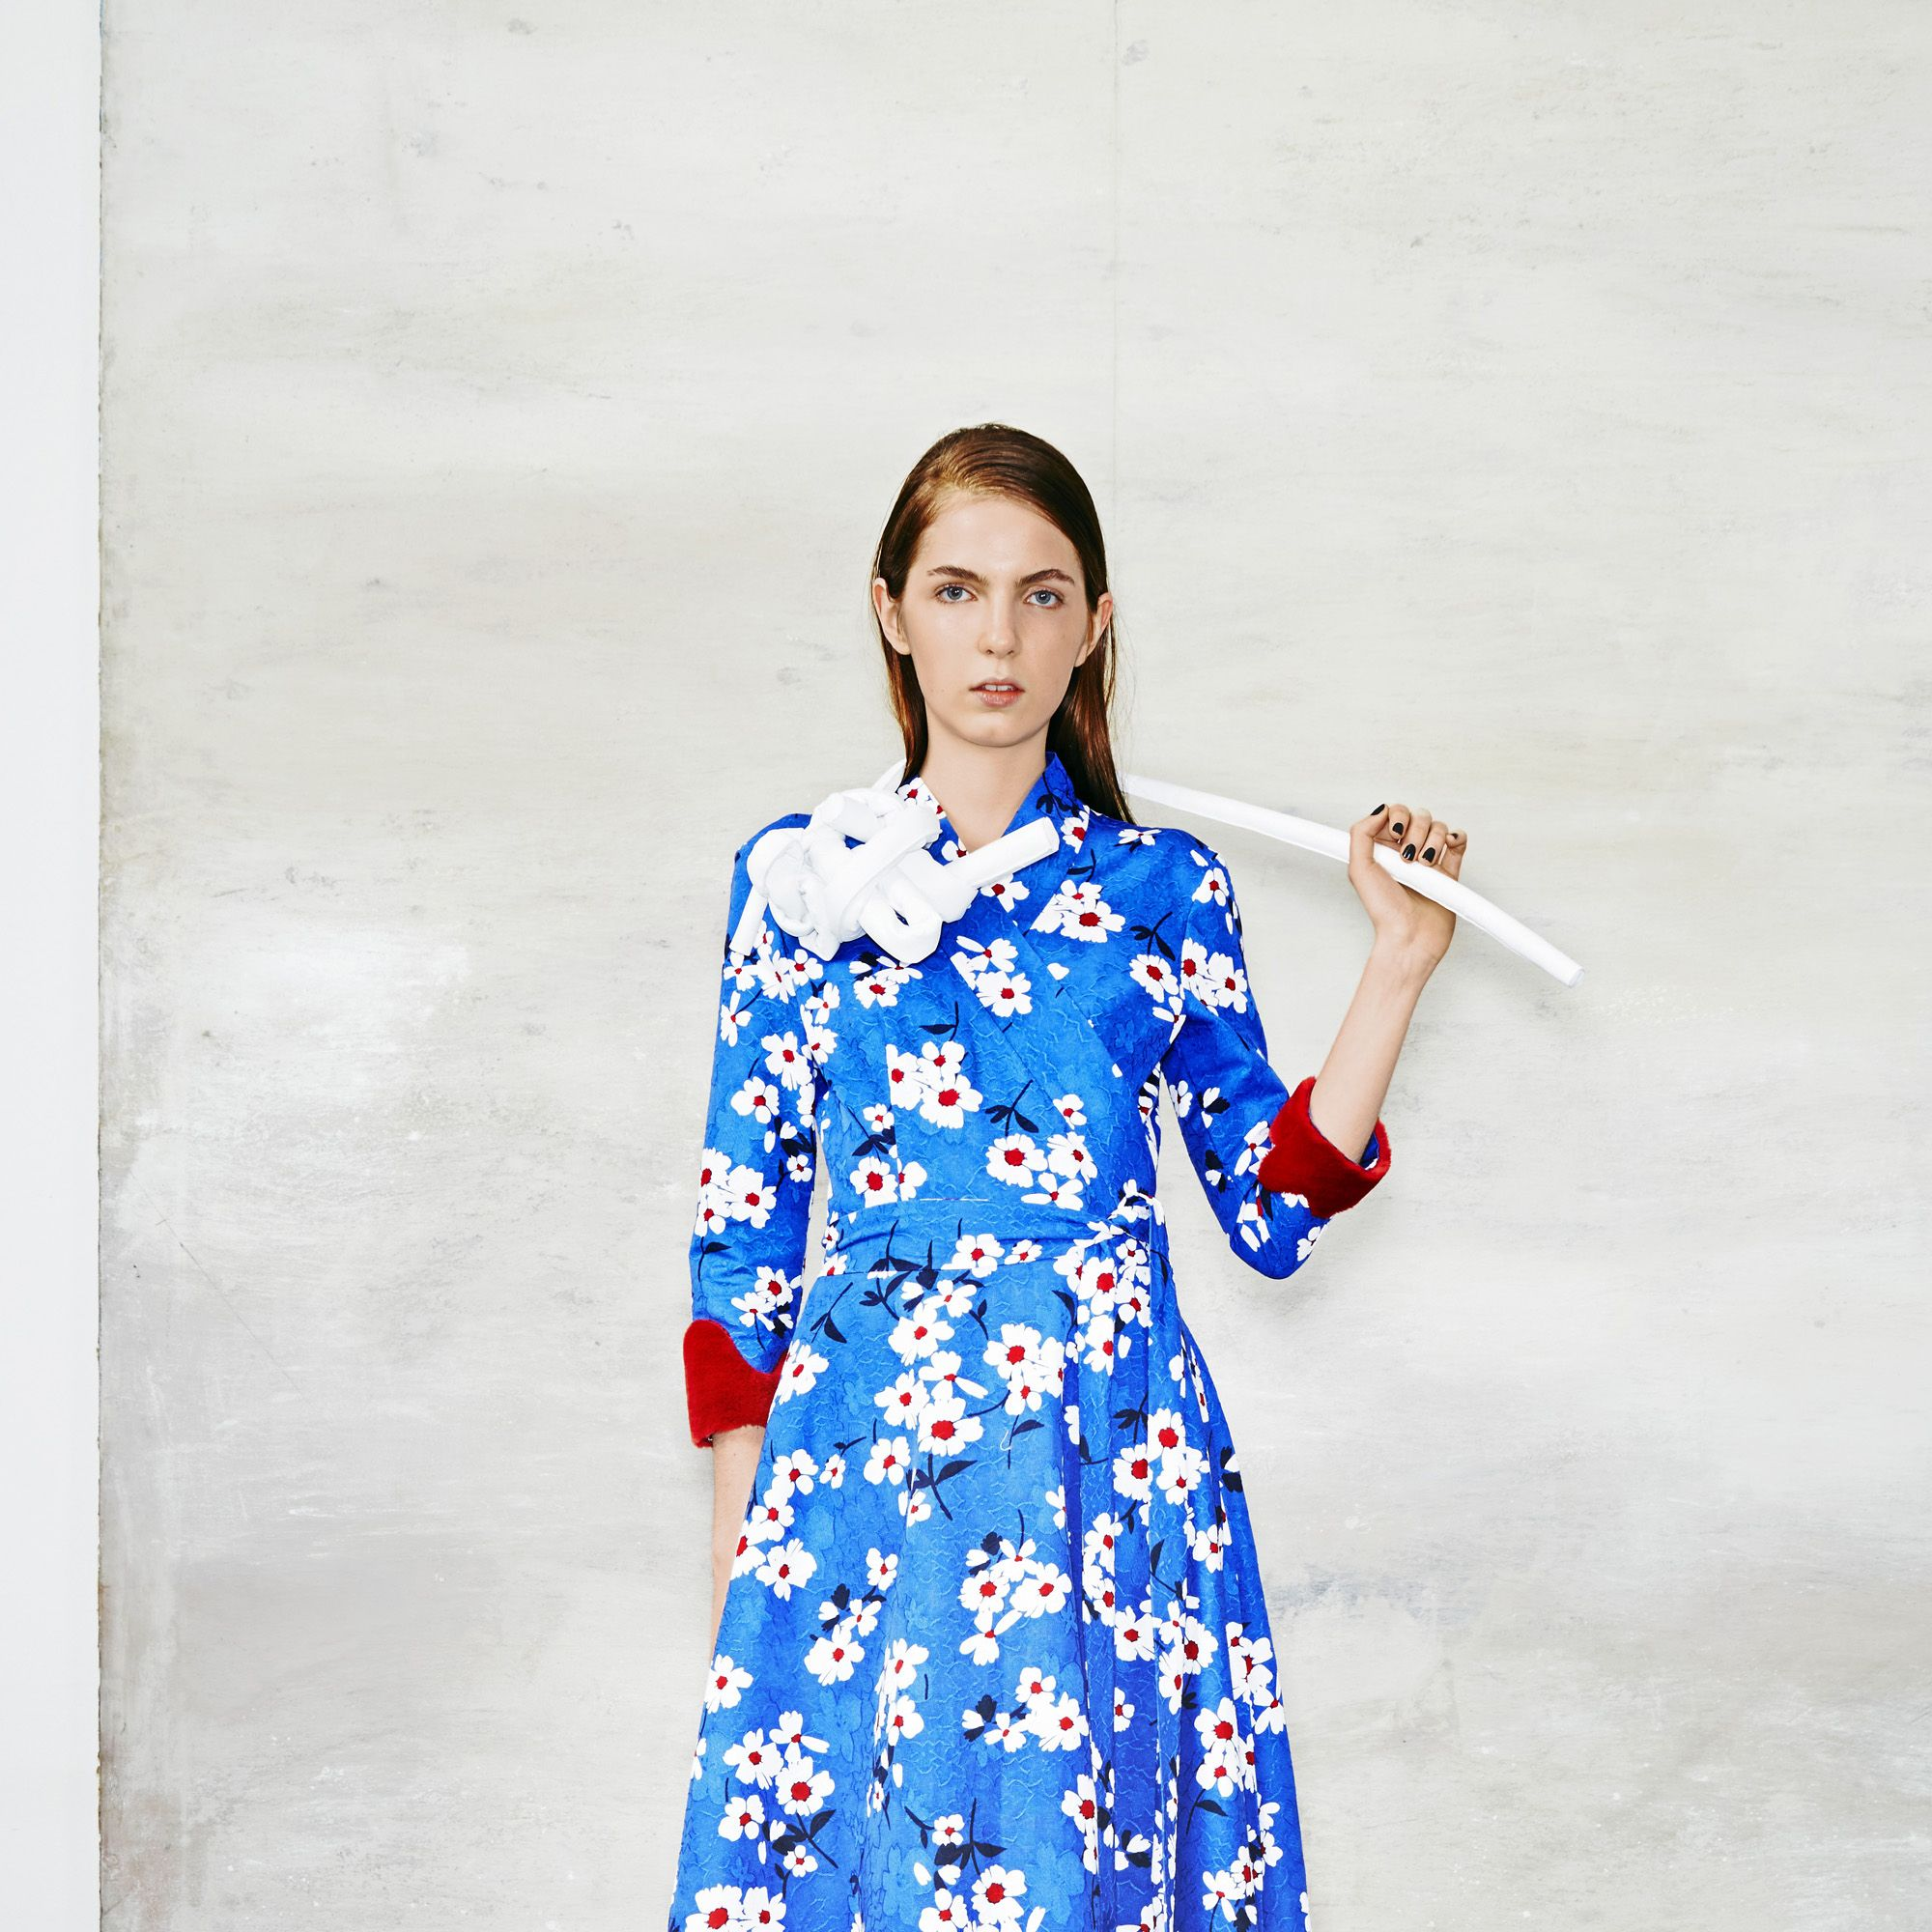 <p>Inspired by historical figures like Amelia Earhart and fictional ones like Miss Saigon, Porkar's fall collection incorporates bold patterns, rich colors, and unconventional tailoring. </p>